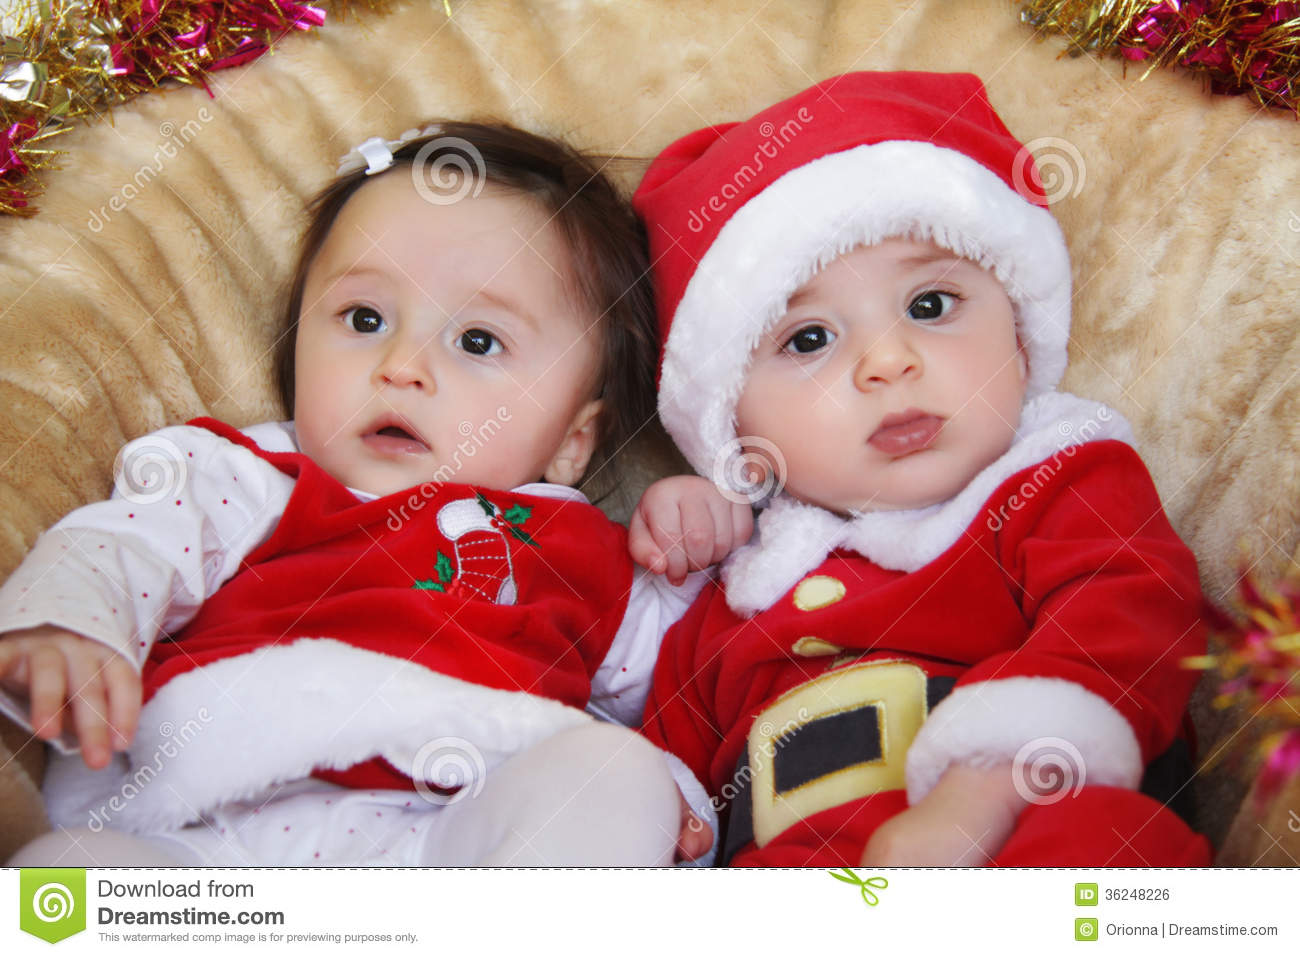 Christmas Funny Small Kids In Santa Claus Clothes. Royalty Free Stock ...